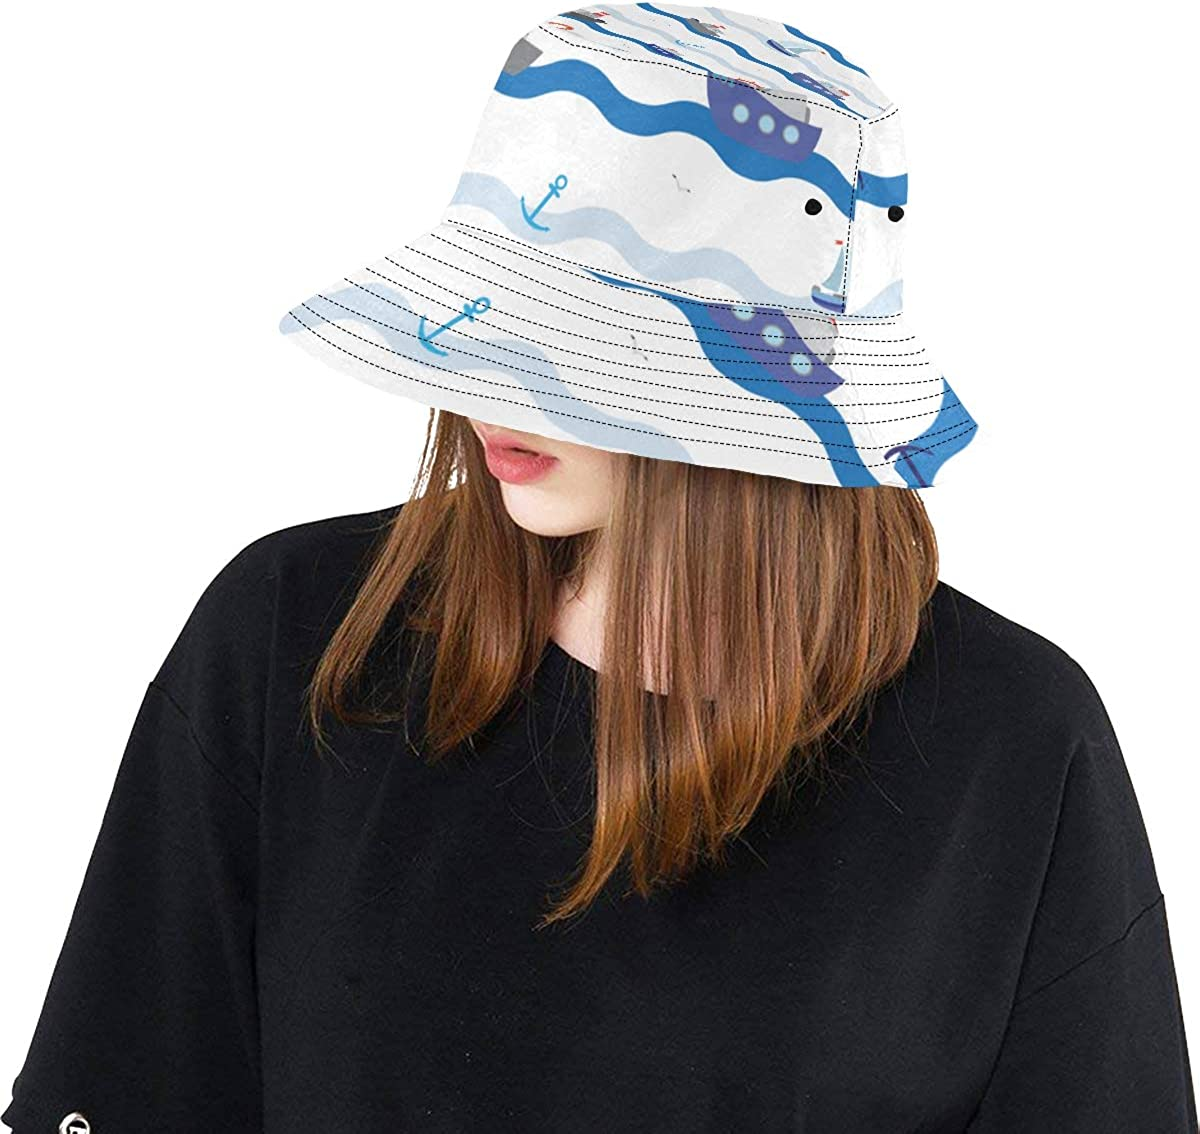 Boat Ship River Ocean Transport Summer Unisex Fishing Sun Top Bucket Hats for Kid Teens Women and Men with Packable Fisherman Cap for Outdoor Baseball Sport Picnic